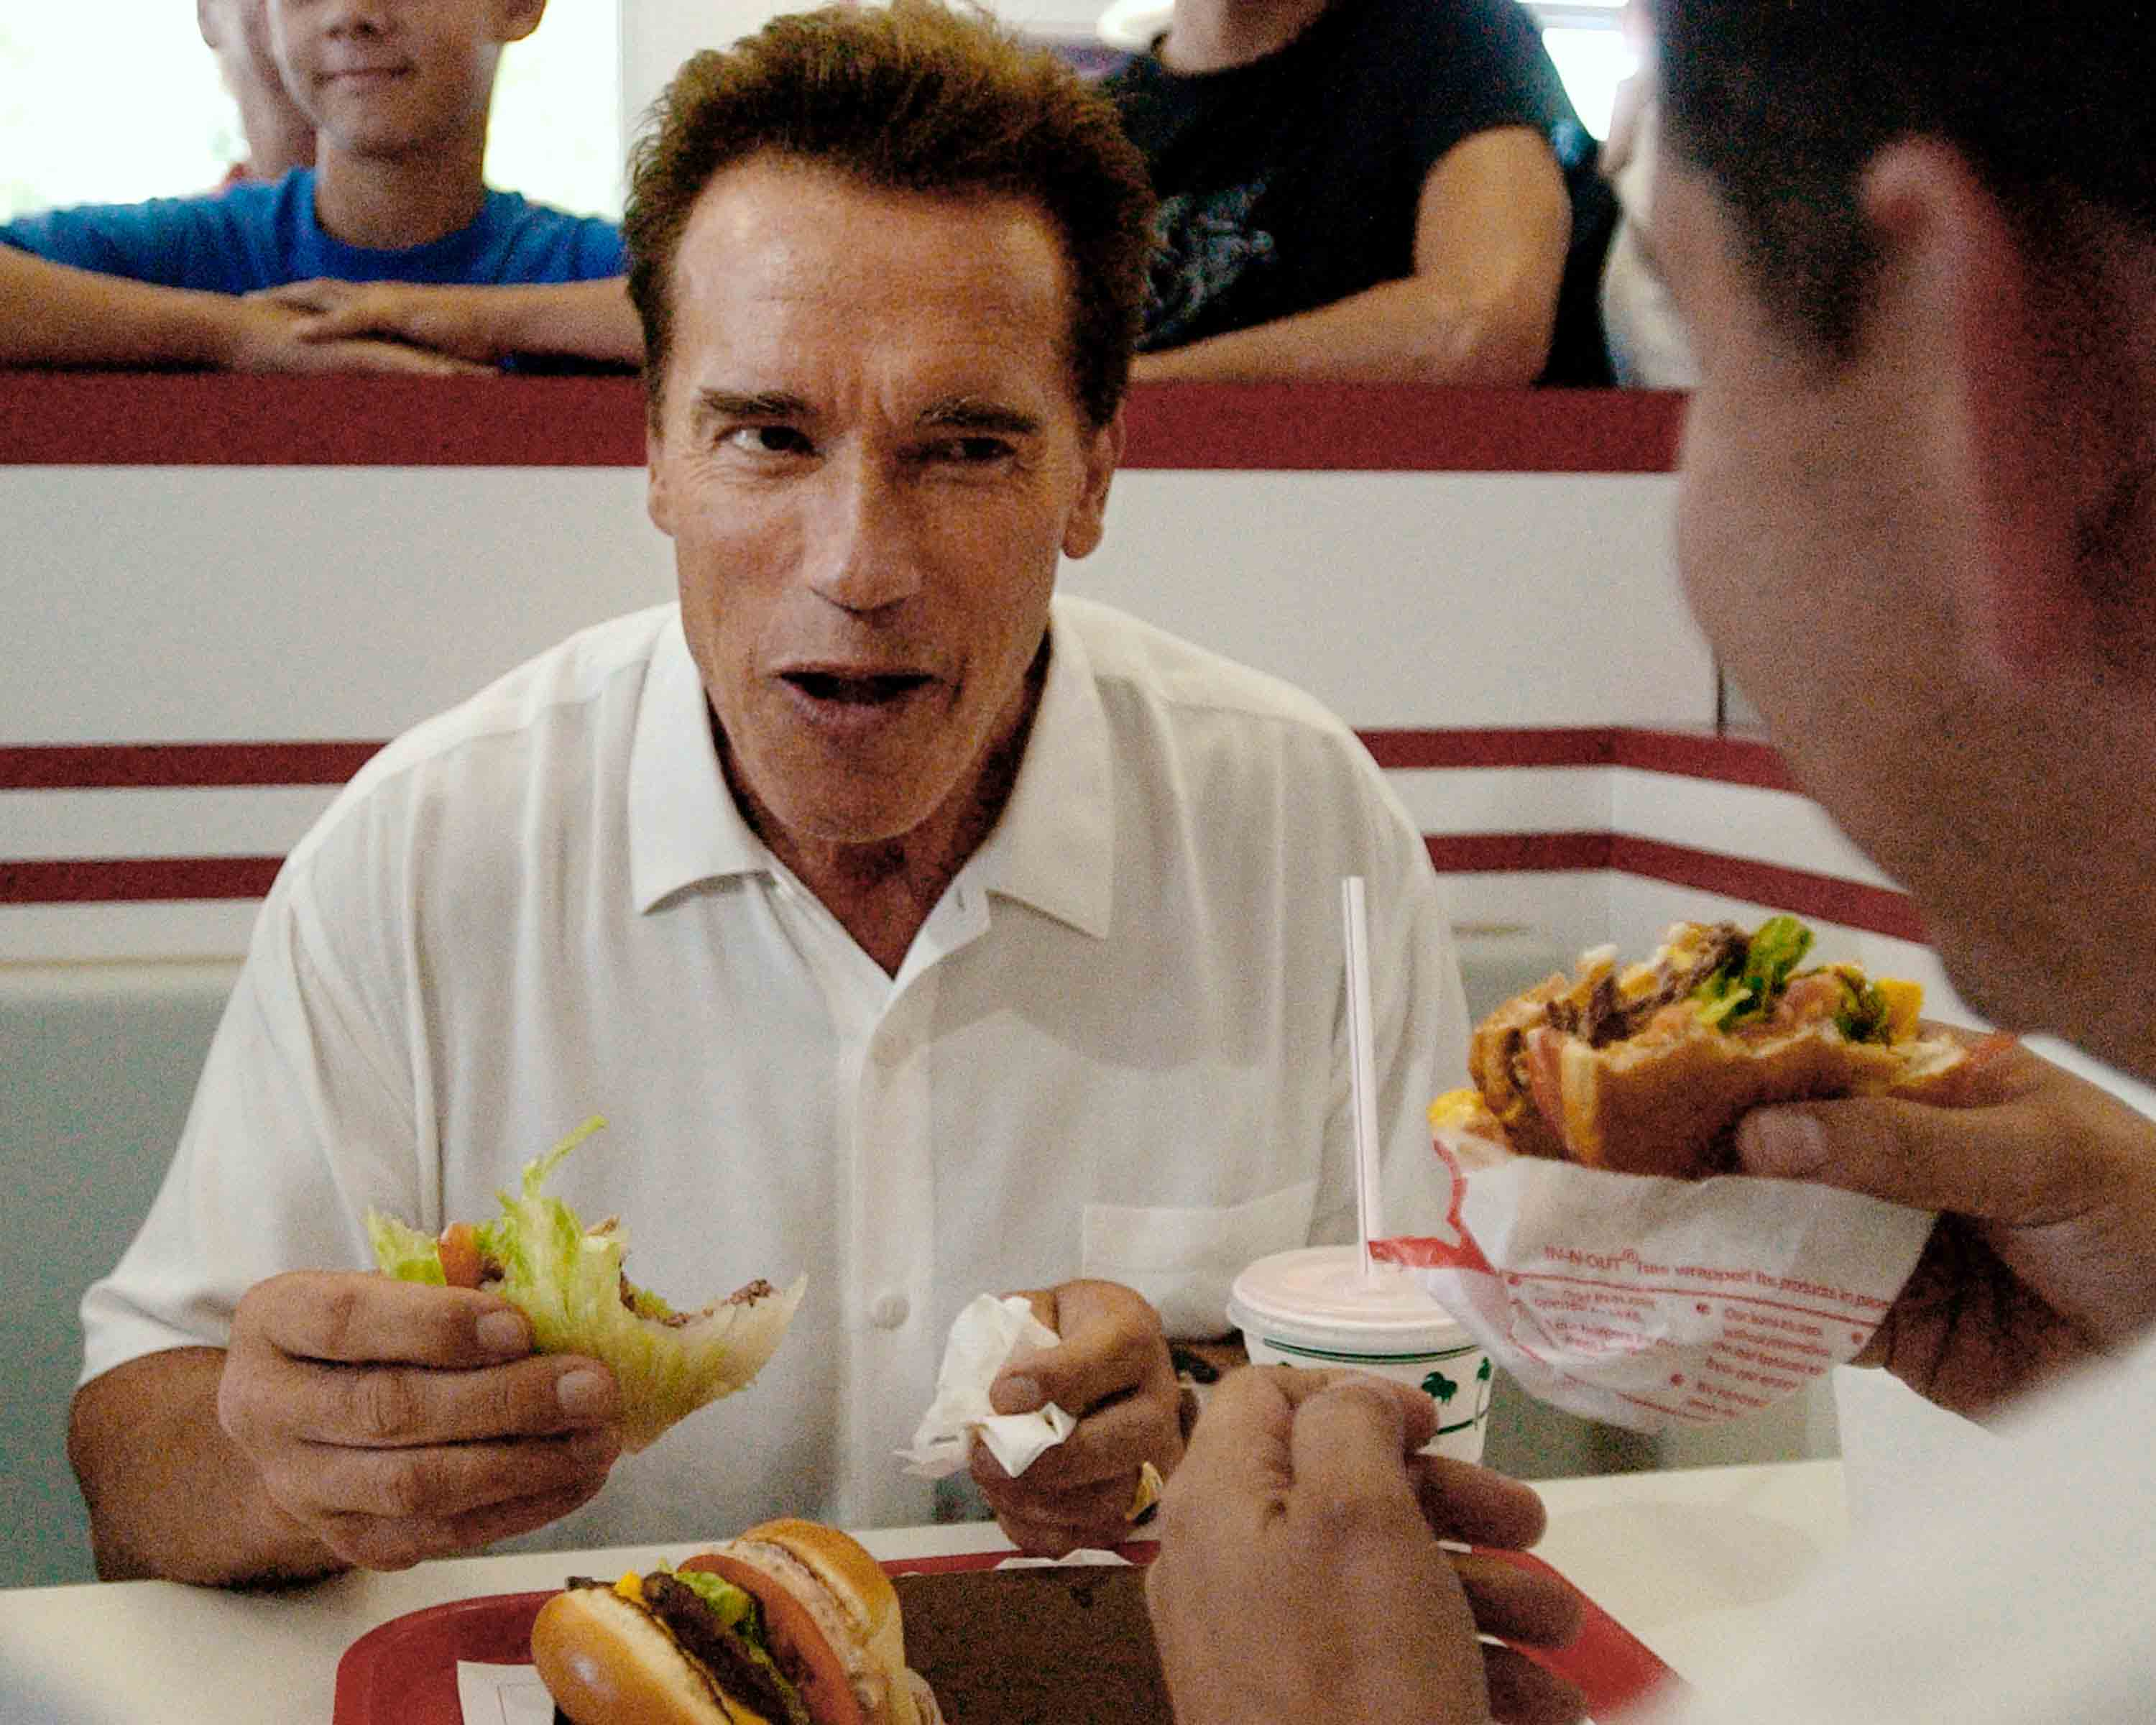 California gubernatorial candidate Arnold Schwarzenegger eats at an 'IN & Out' restaurant